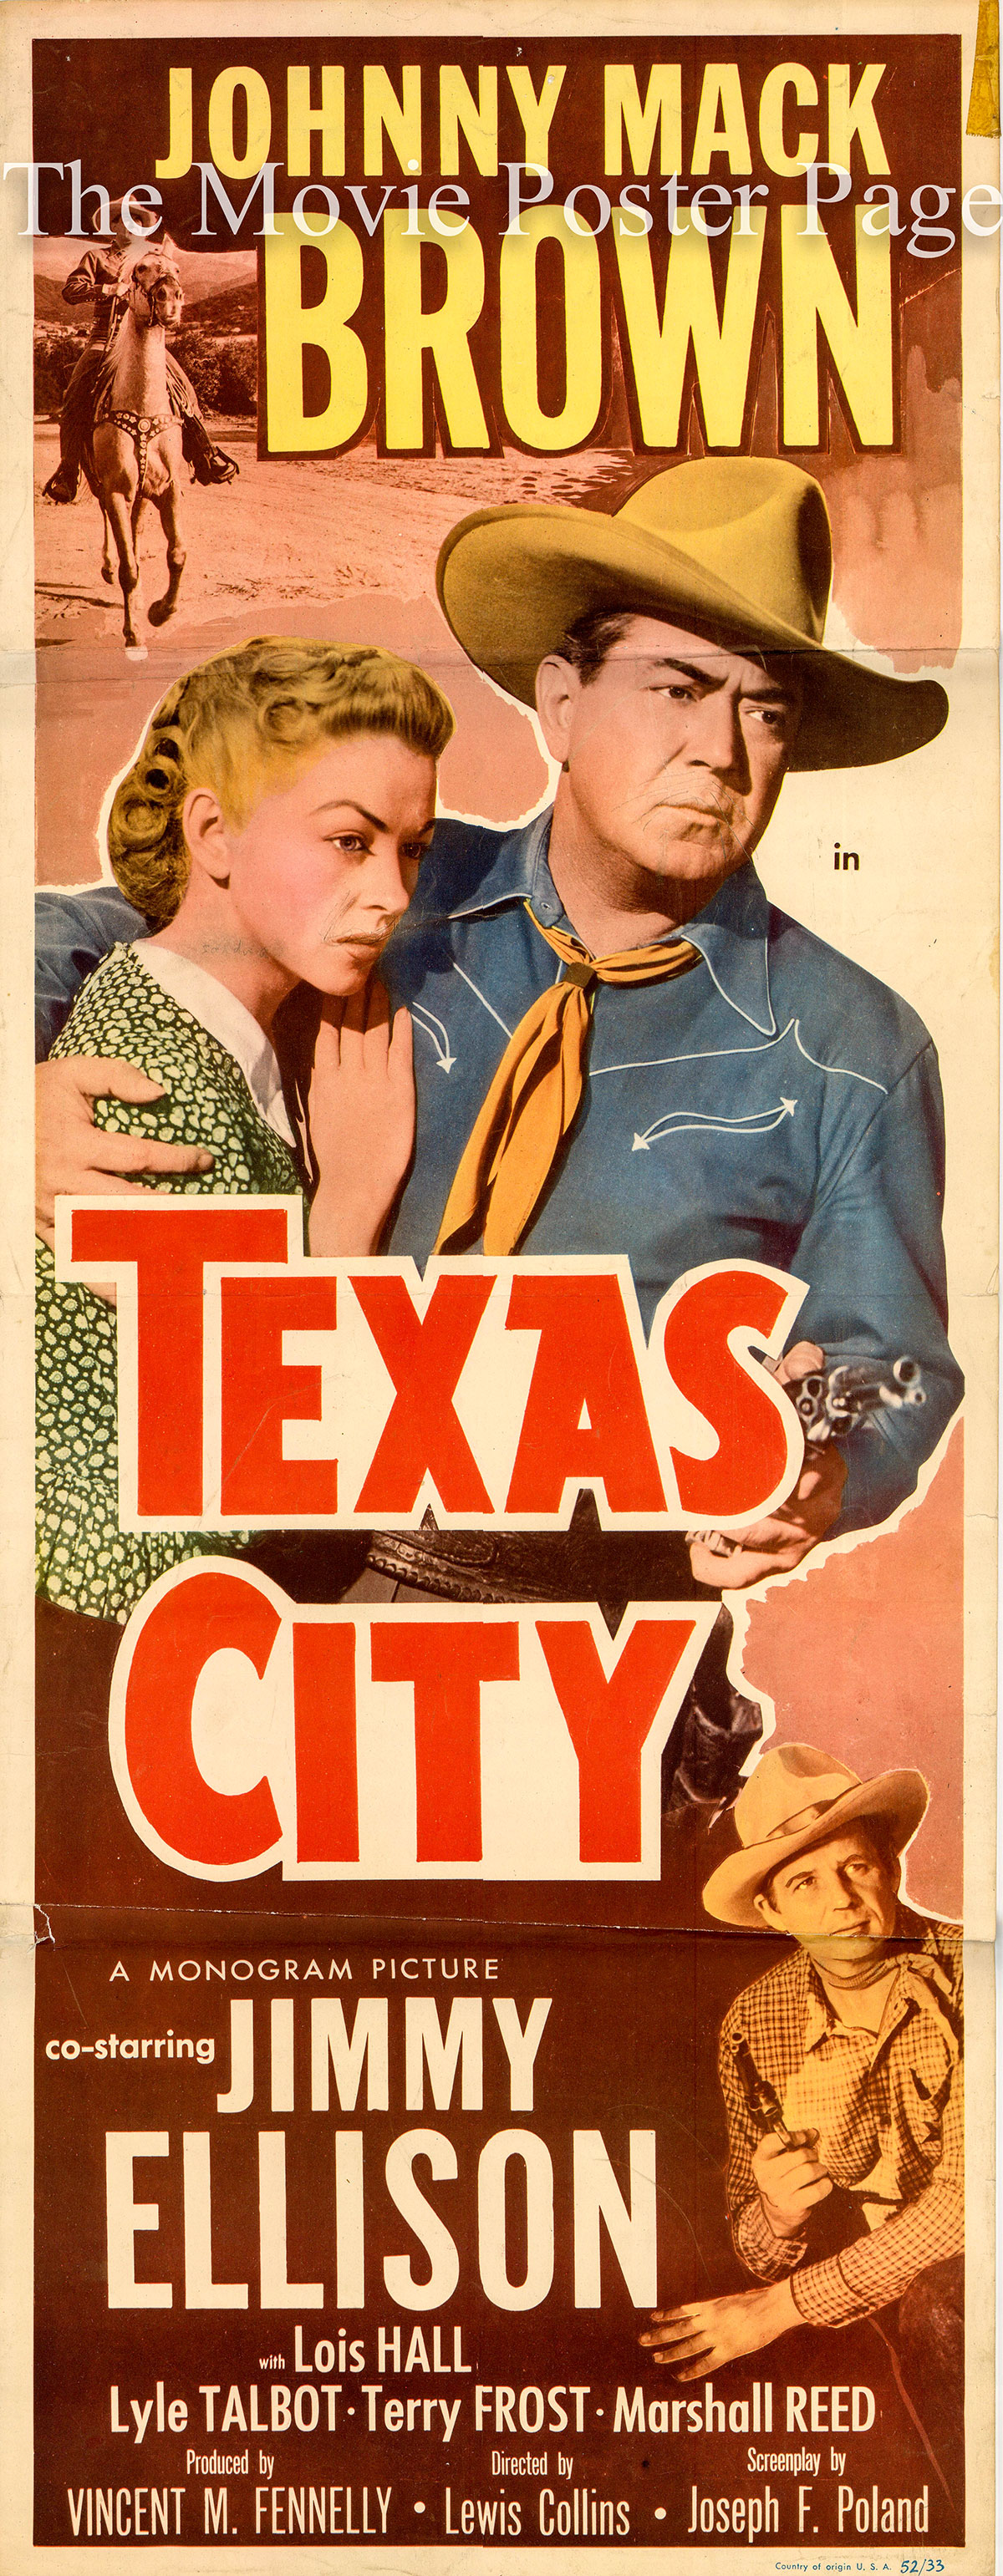 Pictured is a US insert for the 1952 Lewis D. Collins film Texas City starring Johnny Mack Brown.